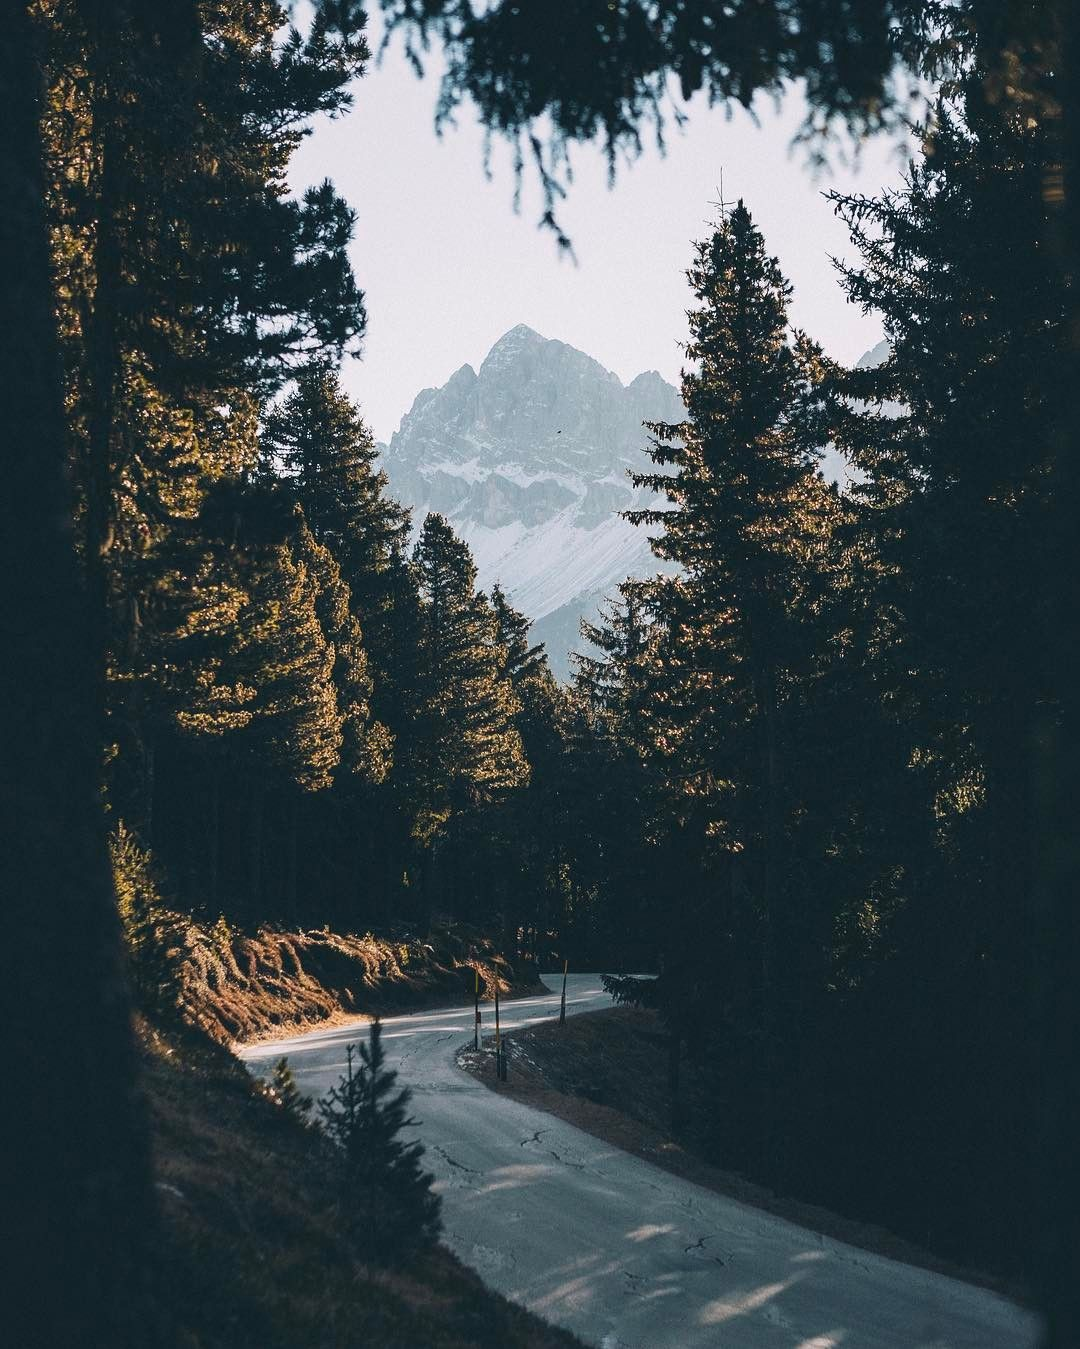 Adventure and Lifestyle Photography by Niklas Söderlund #inspiration #photography